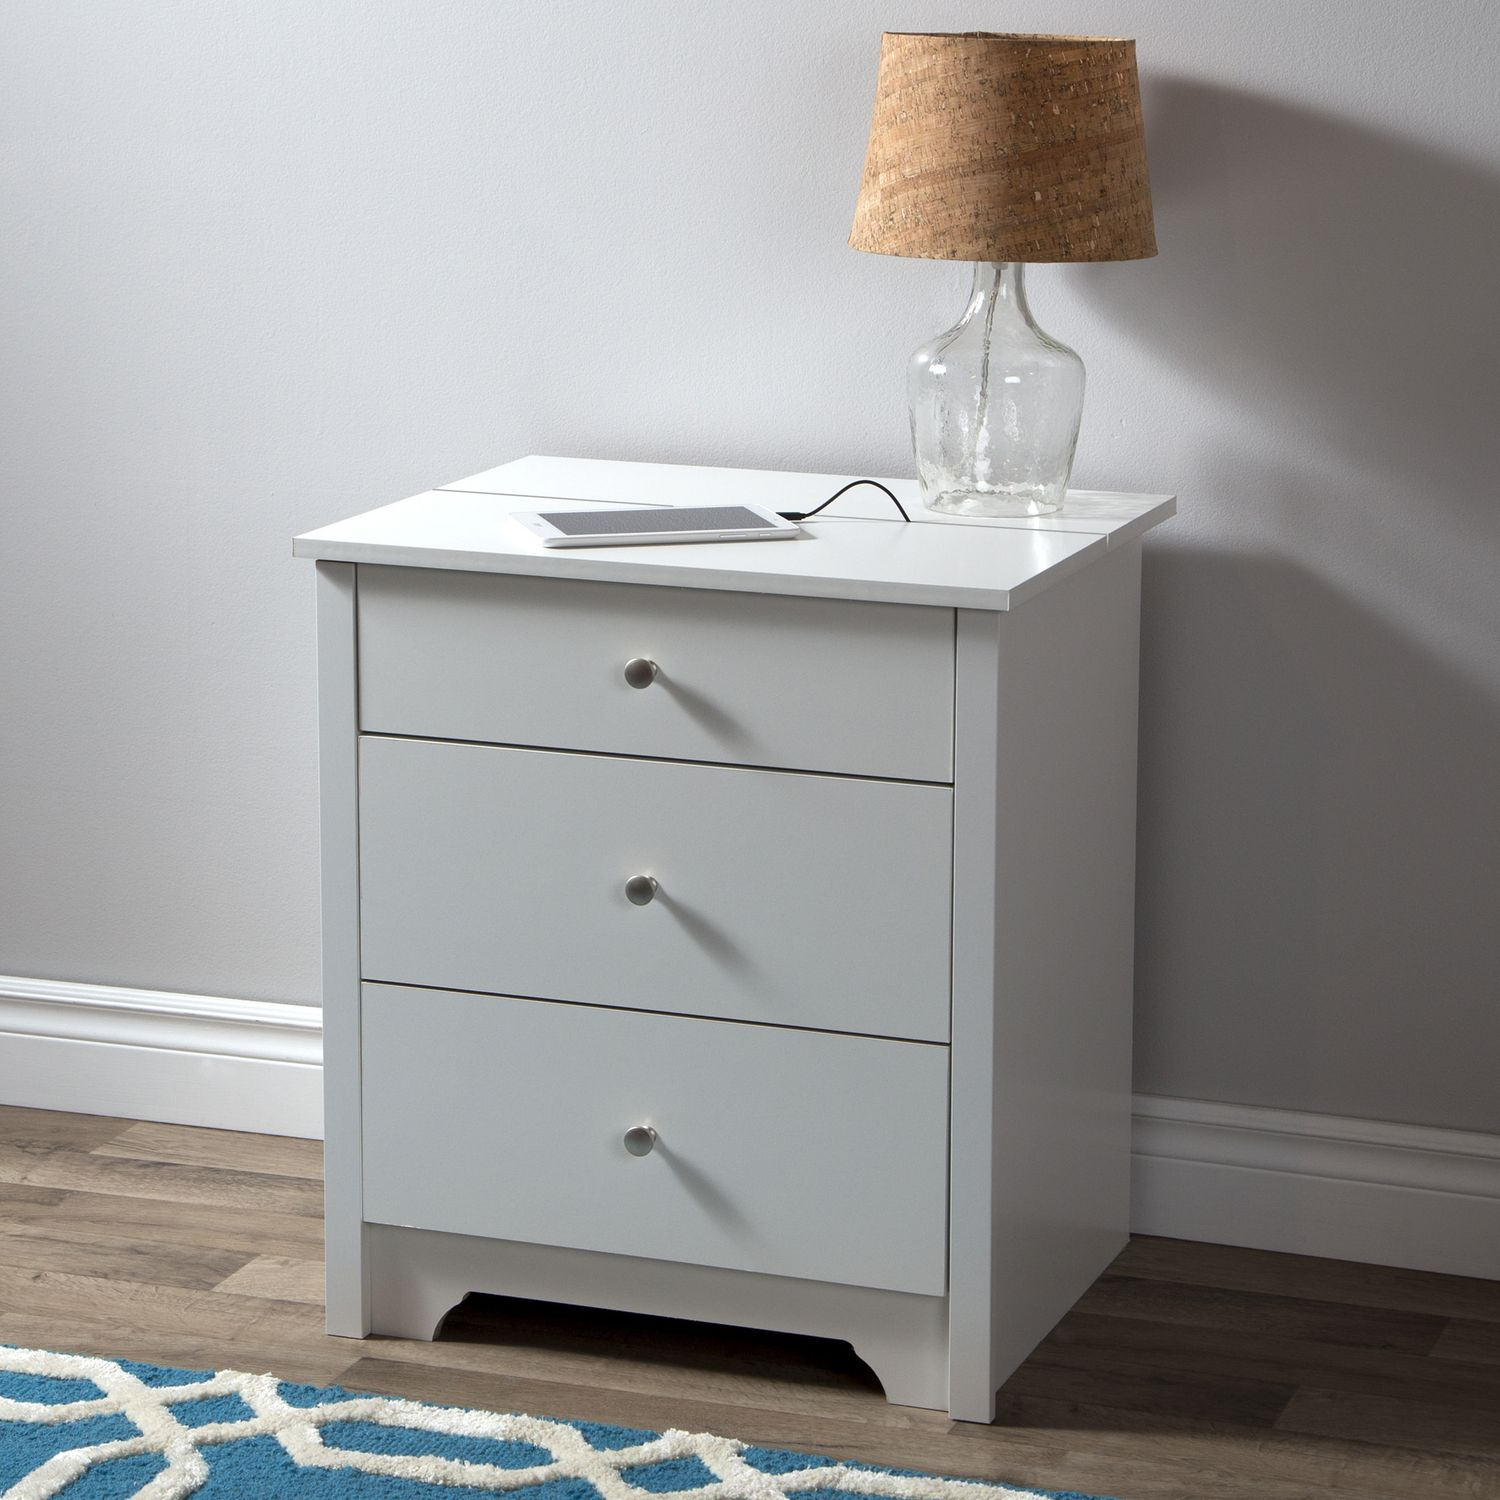 south shore vito nightstand with charging station and drawers walmart canada